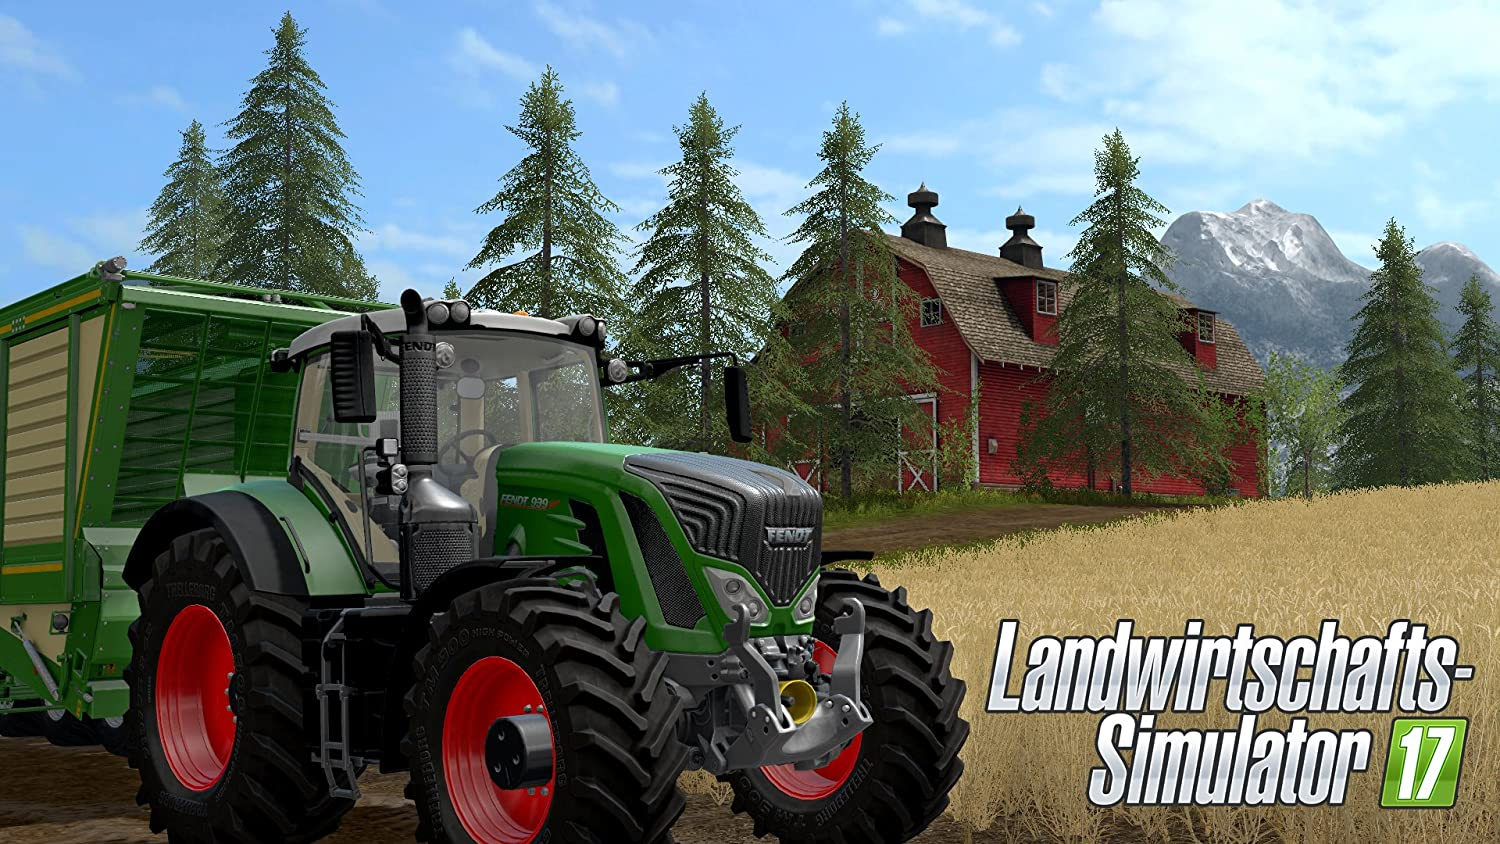 Landwirtschafts-Simulator 17 [PC]: Amazon.de: Games